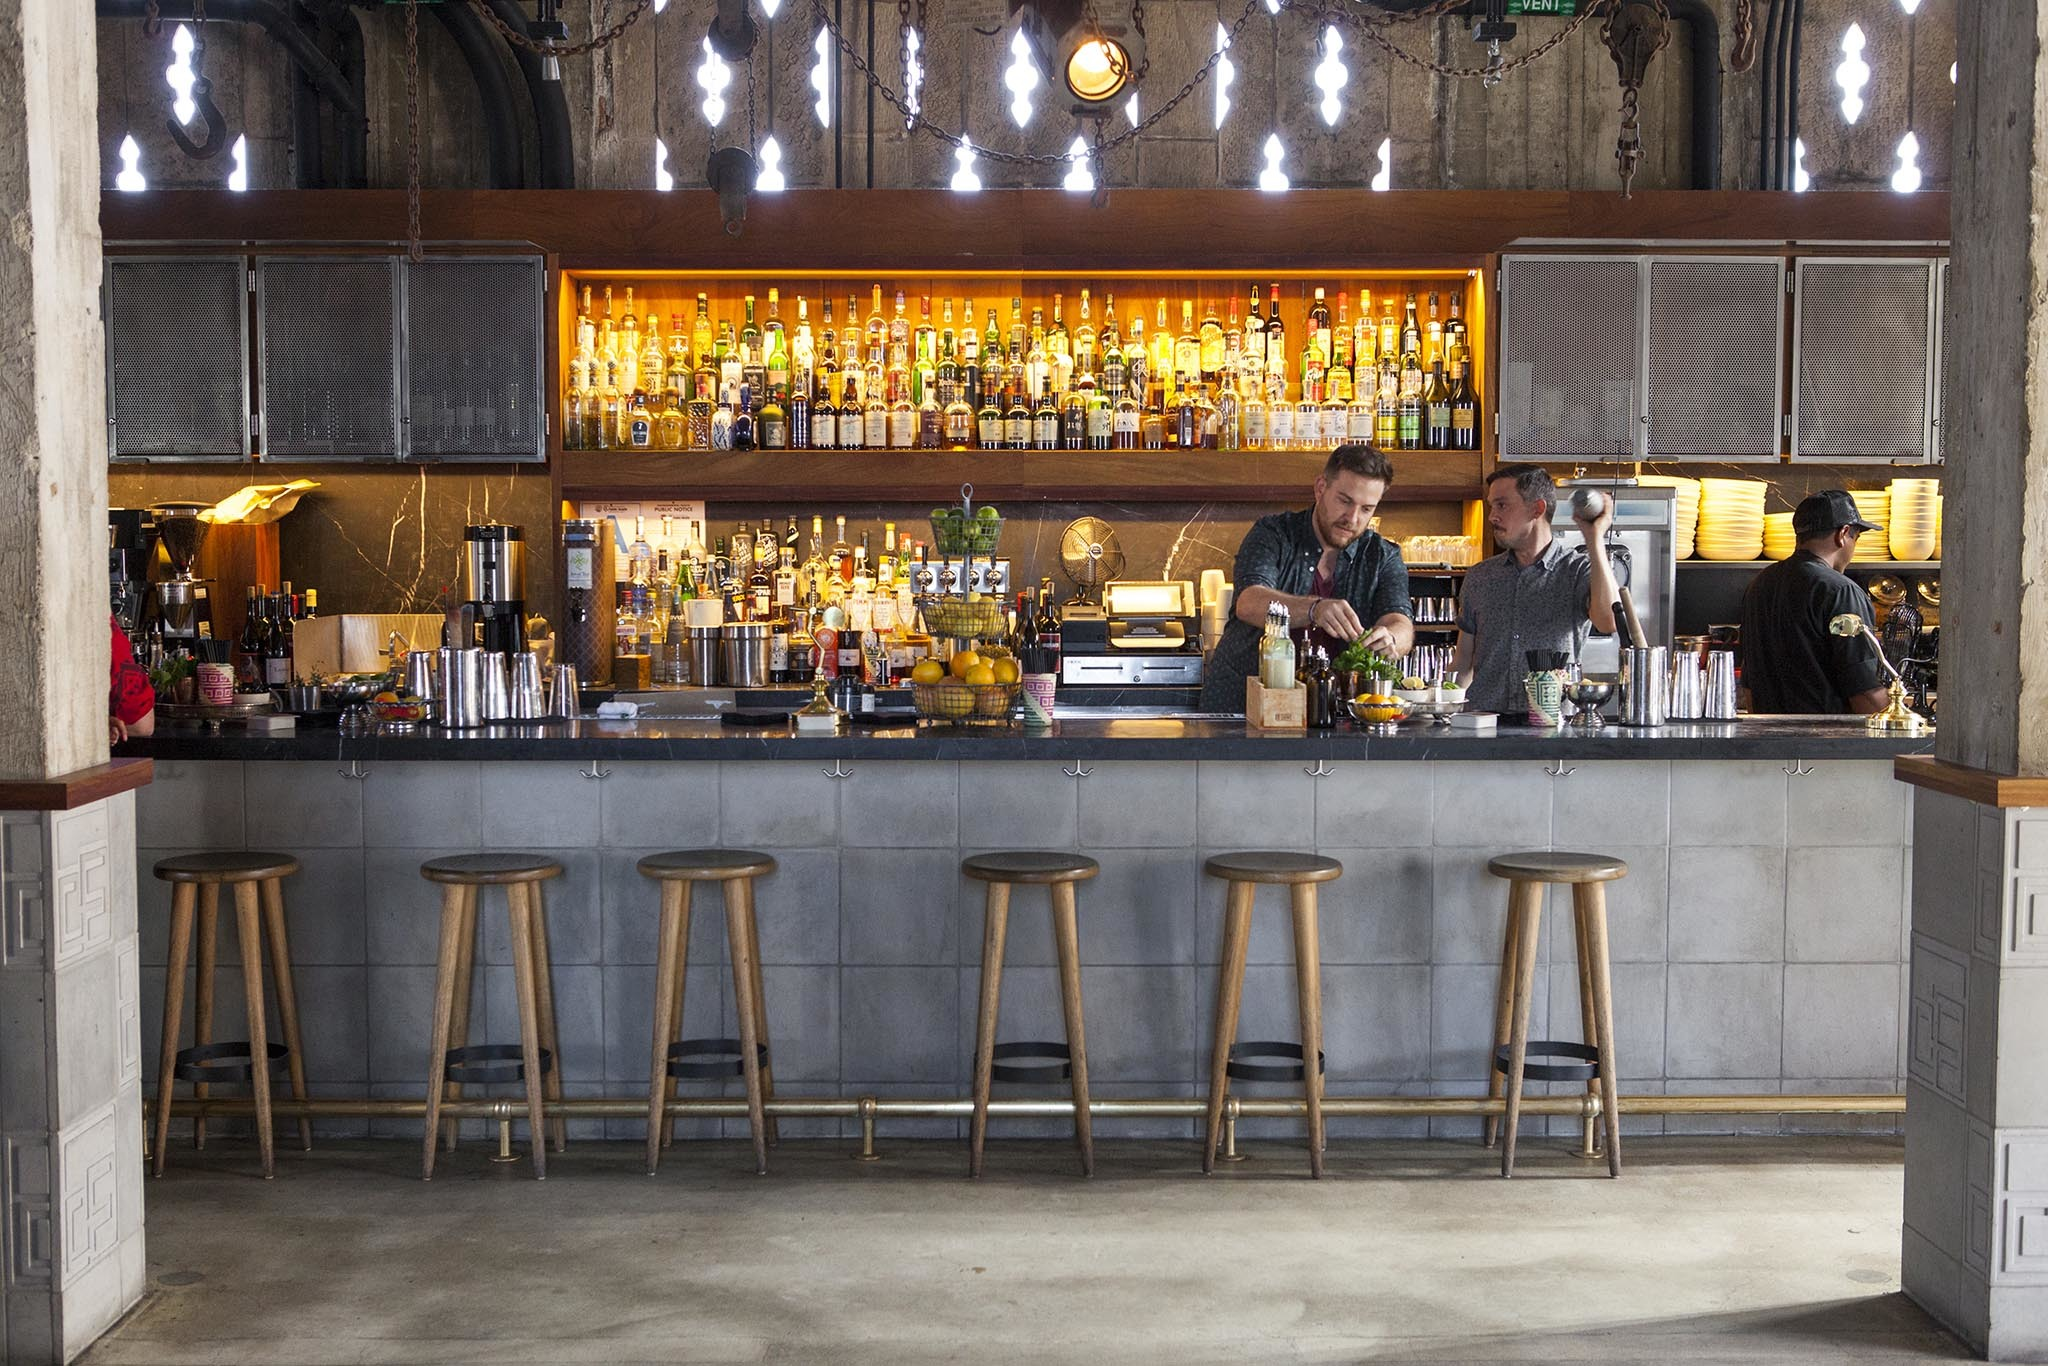 Upstairs Bar at the Ace hotel